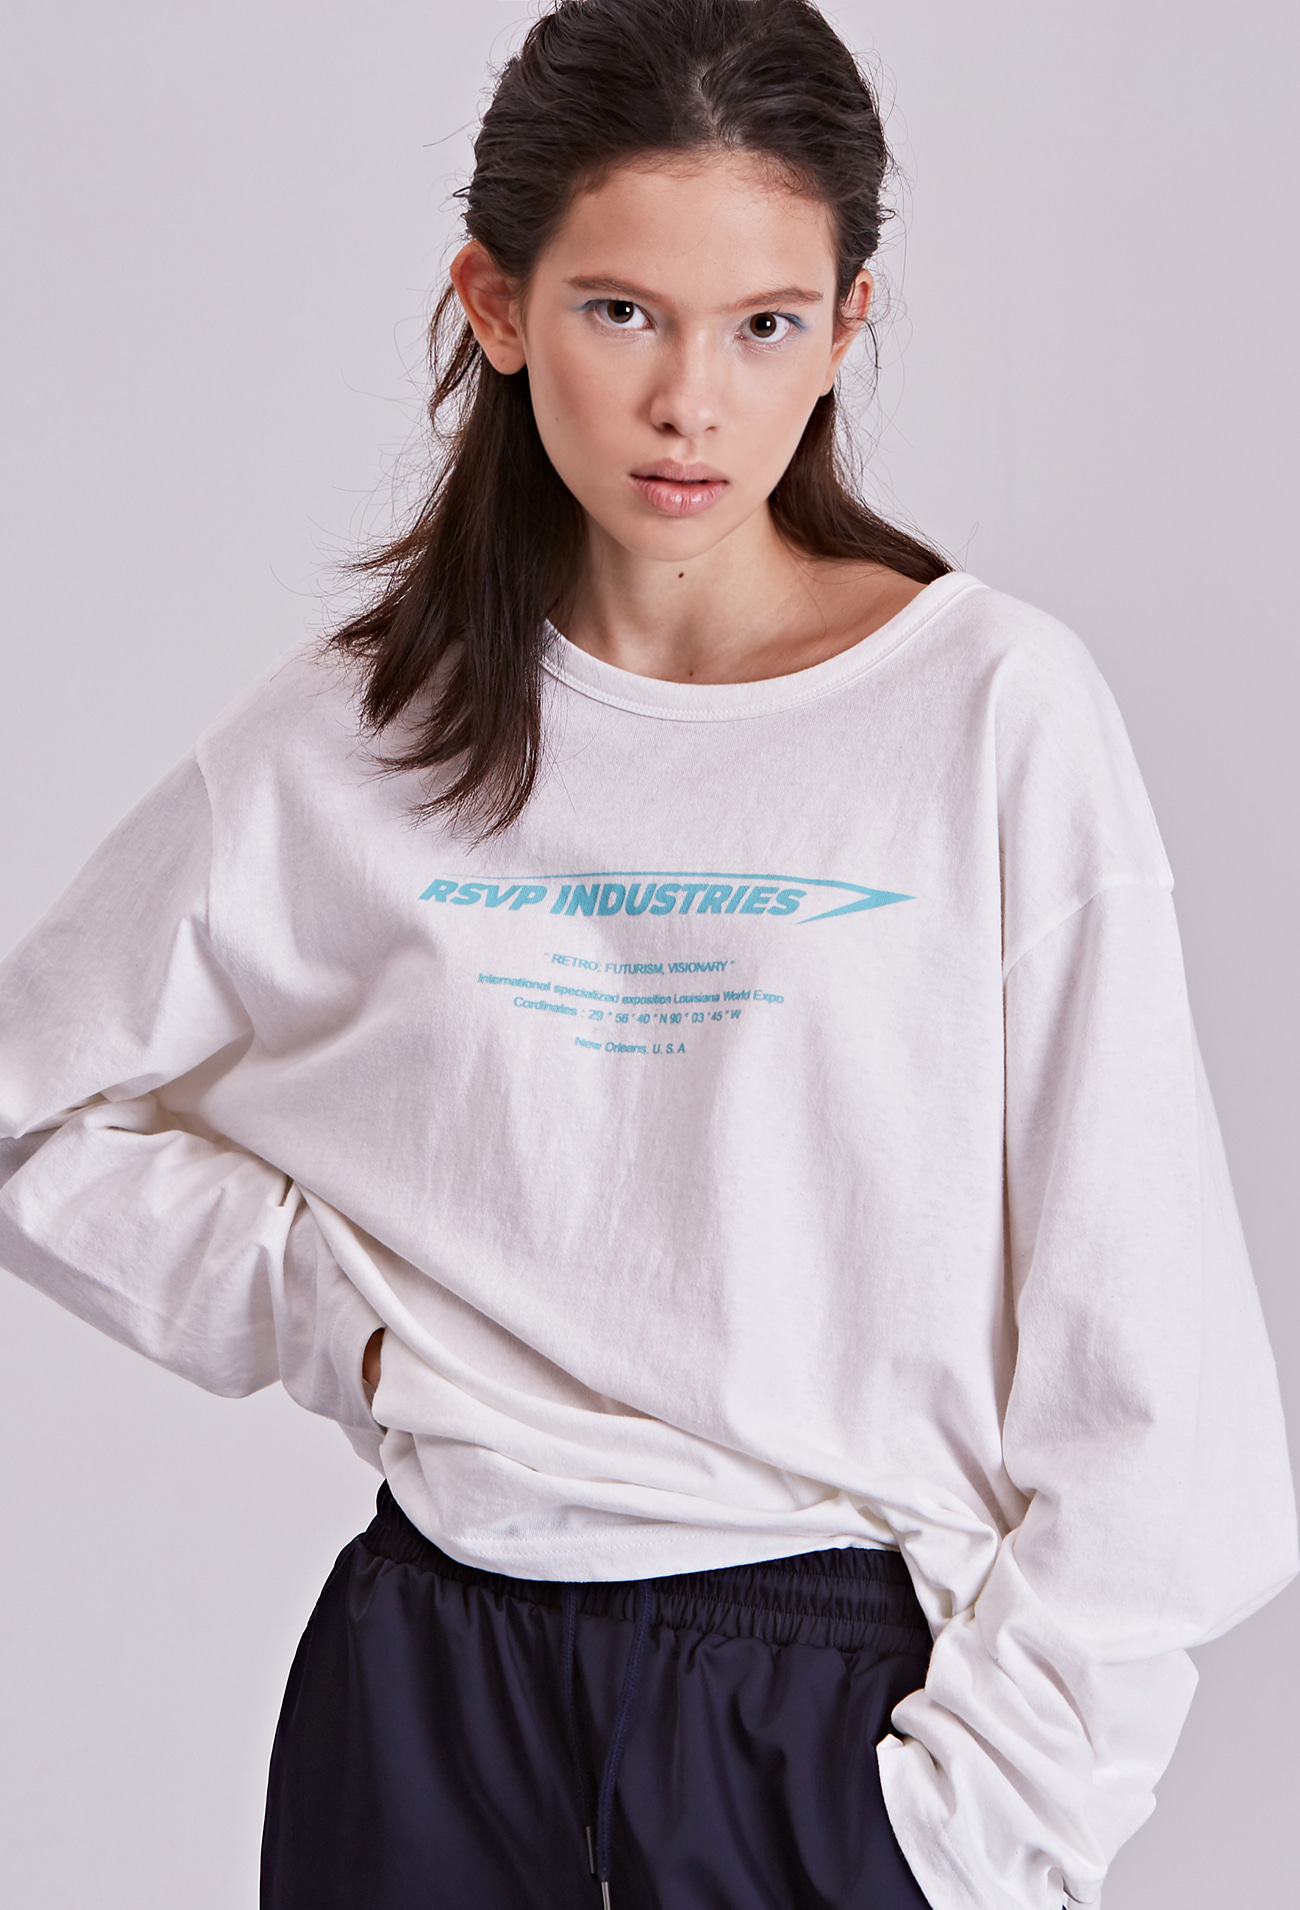 RSVP INDUSTRIES LONG SLEEVES (WHITE)